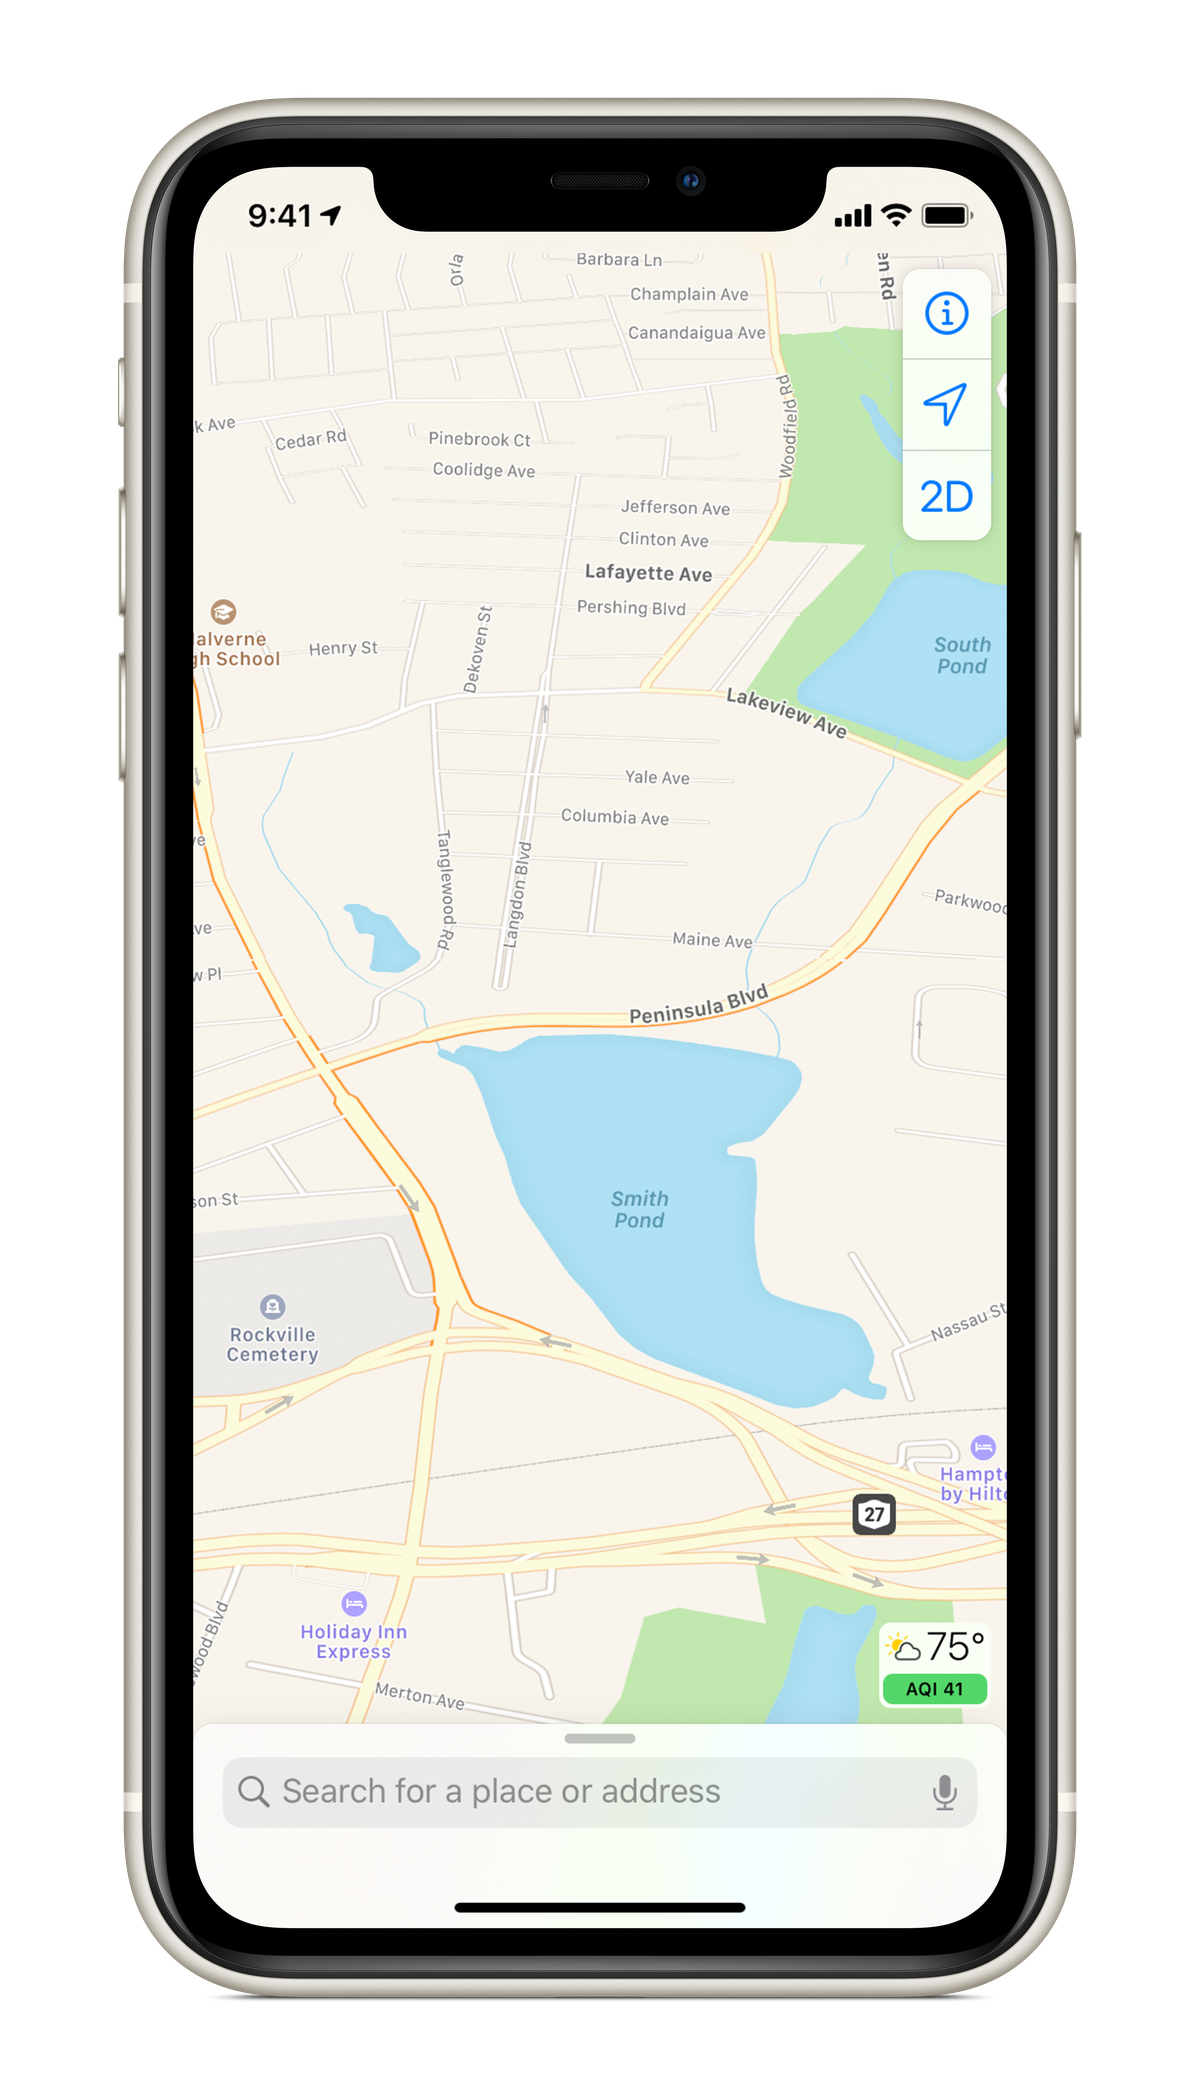 Apple Maps is looking better than ever, but it still has a ... on stanford university maps, search maps, gppgle maps, gogole maps, online maps, aerial maps, waze maps, googlr maps, msn maps, iphone maps, microsoft maps, amazon fire phone maps, aeronautical maps, ipad maps, googie maps, goolge maps, bing maps, topographic maps, android maps, road map usa states maps,